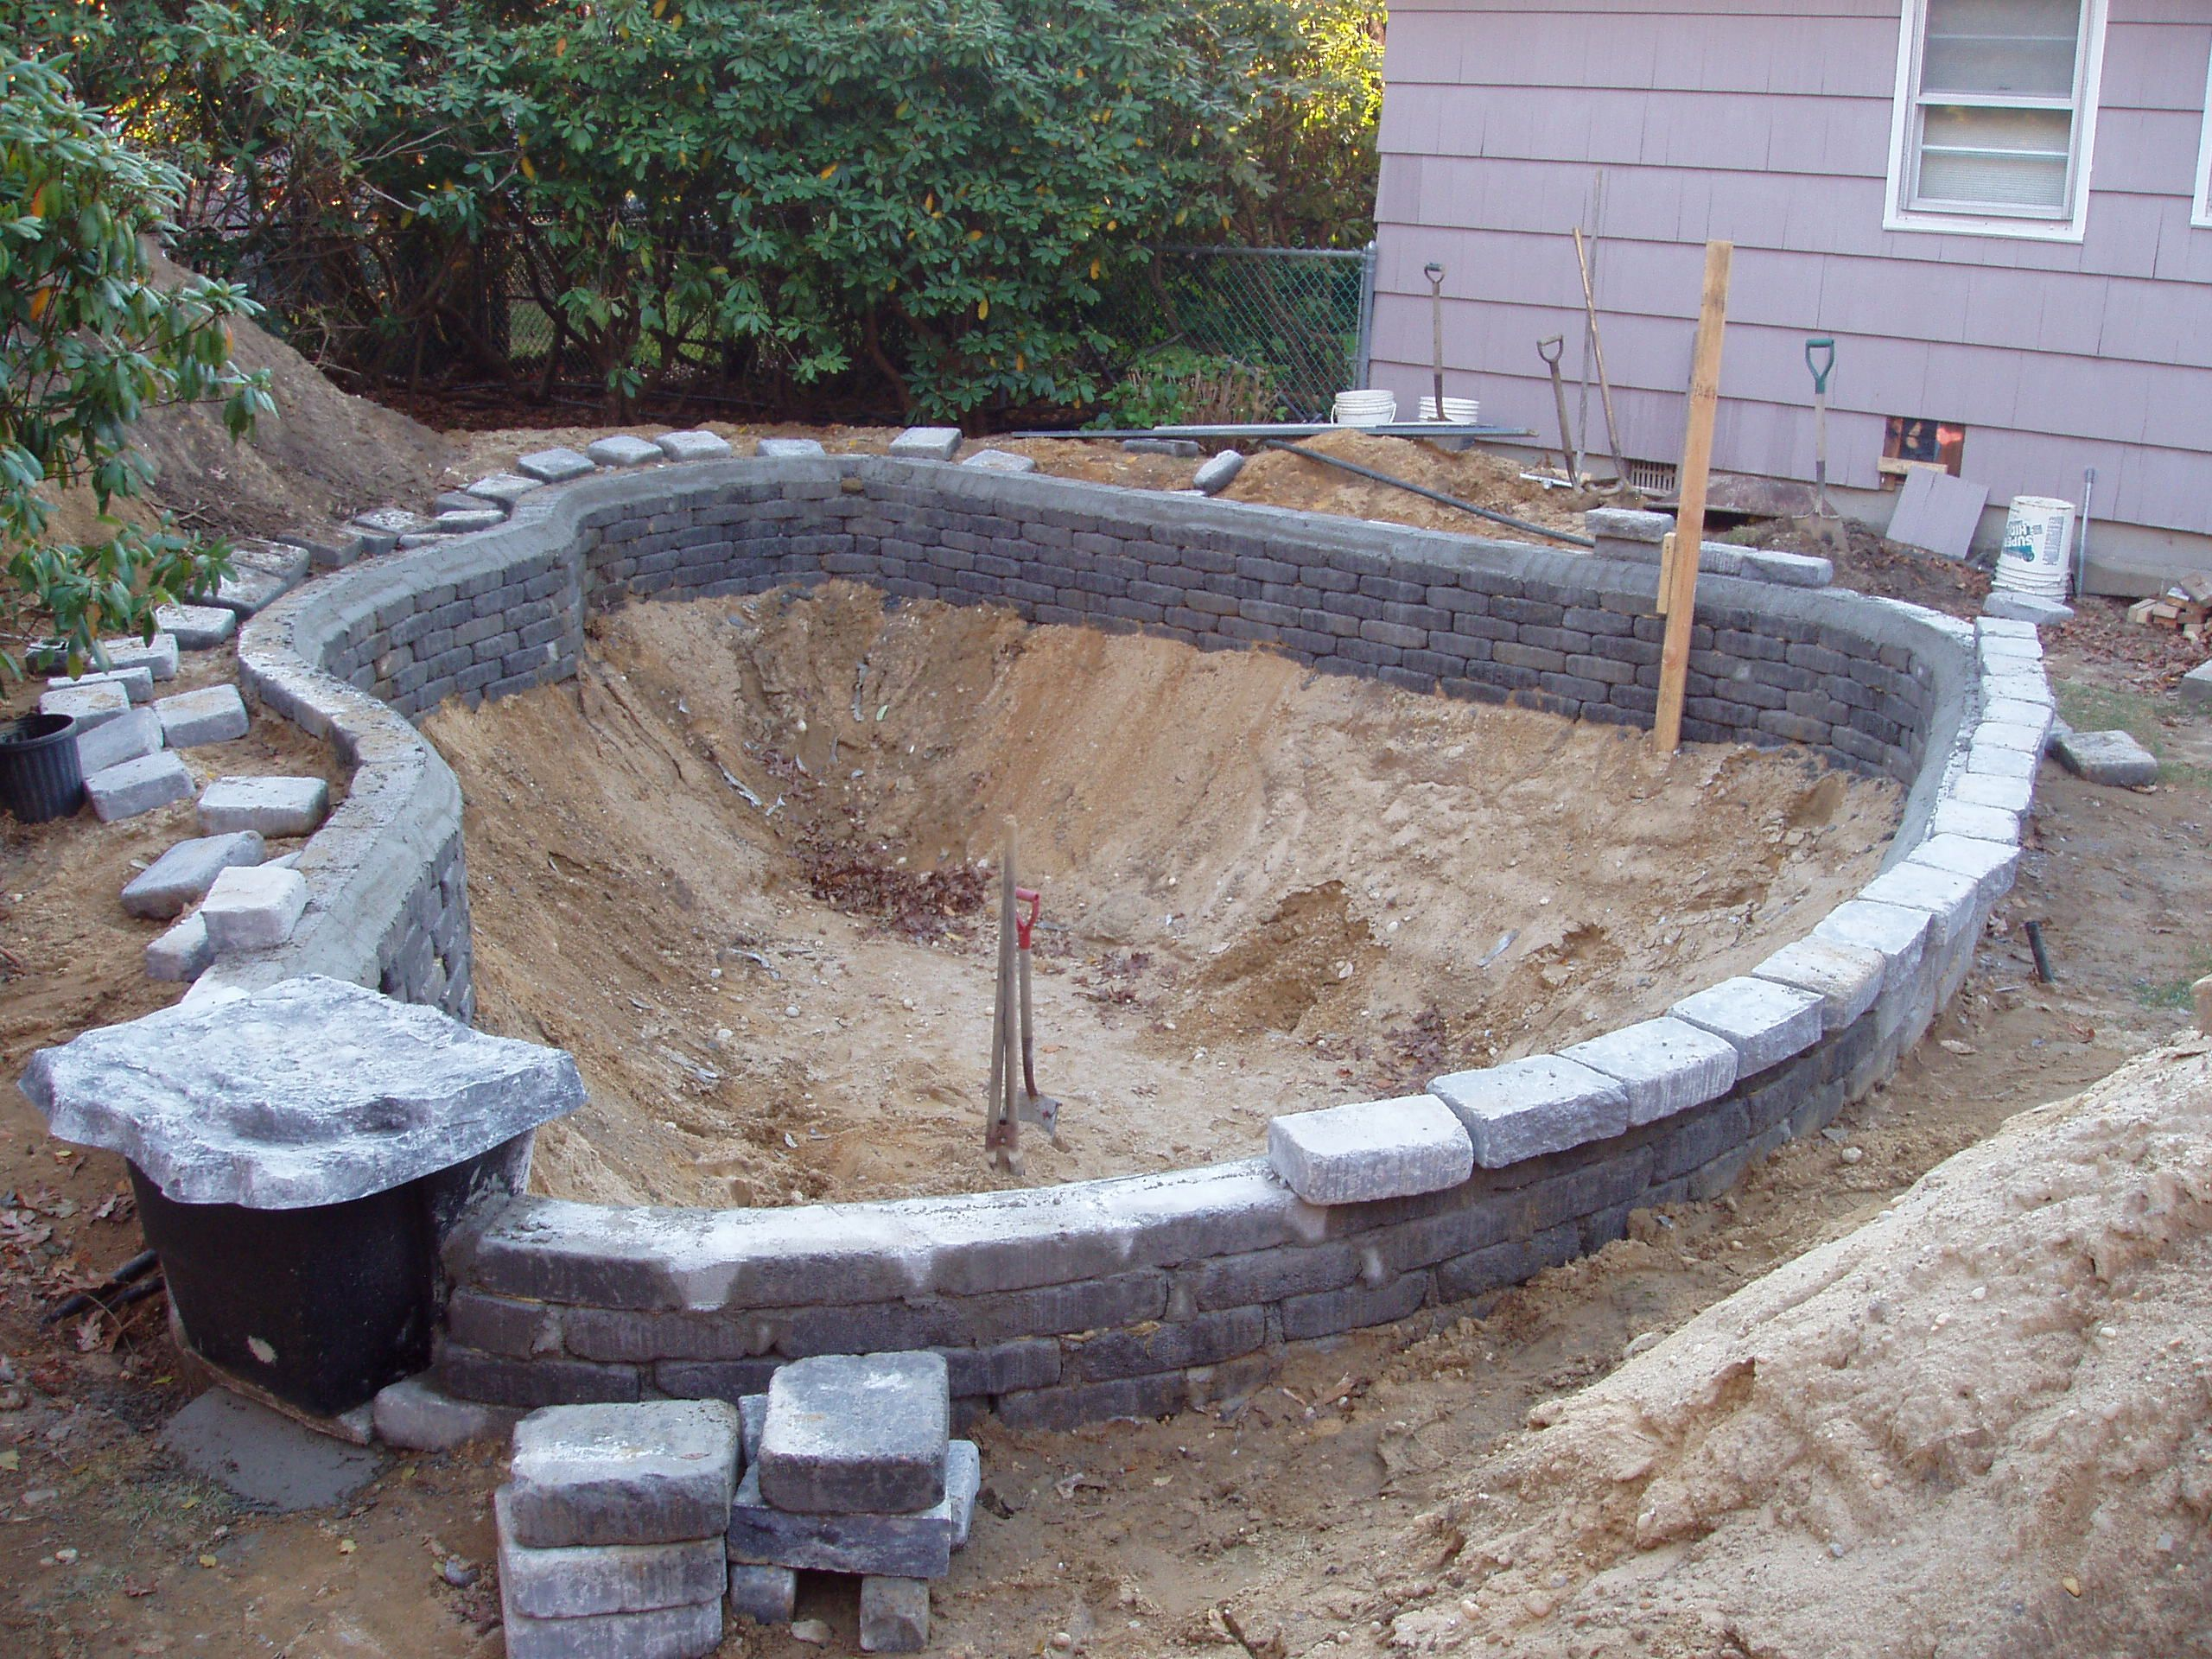 Pond design and construction google search aquaponics for Backyard koi fish pond